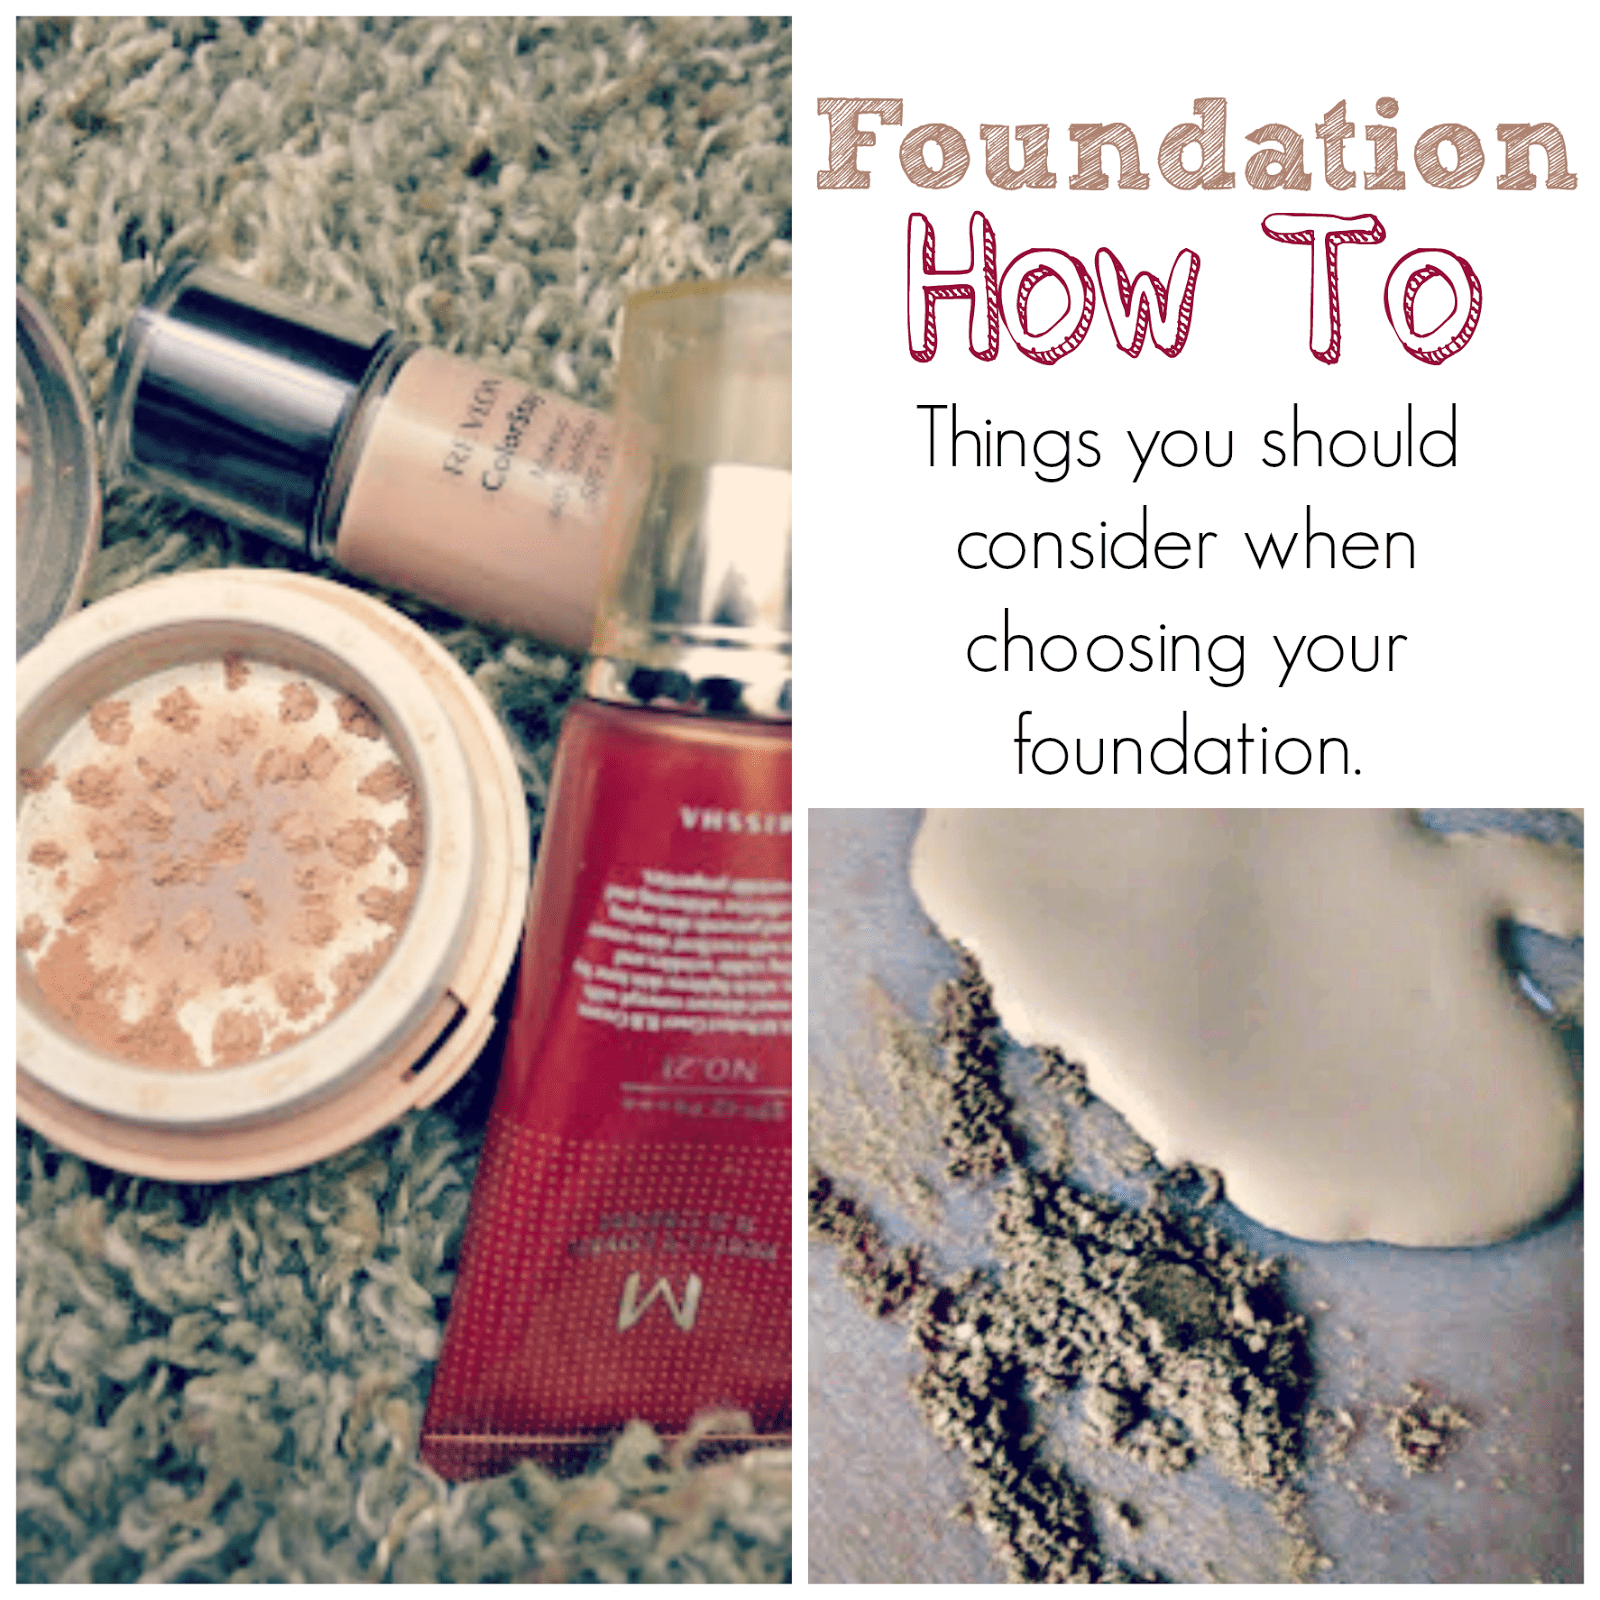 Foundation: How to